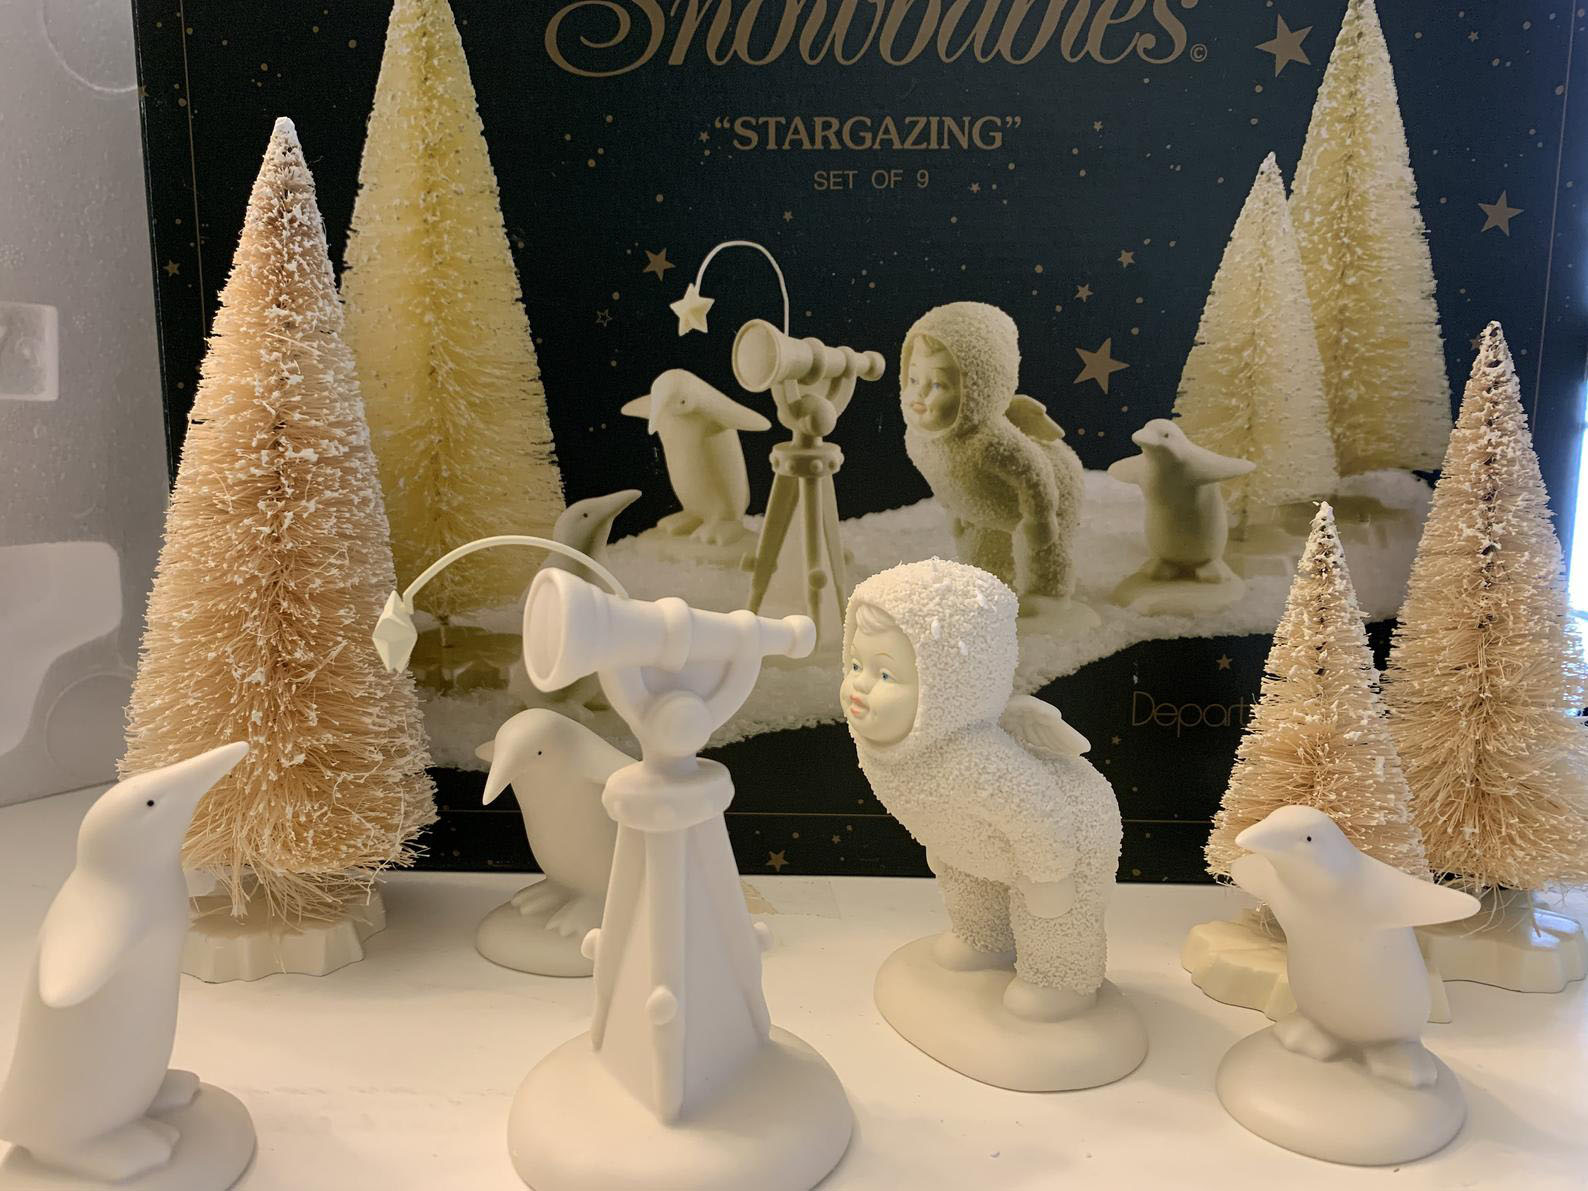 Snowbabies Stargazing Set